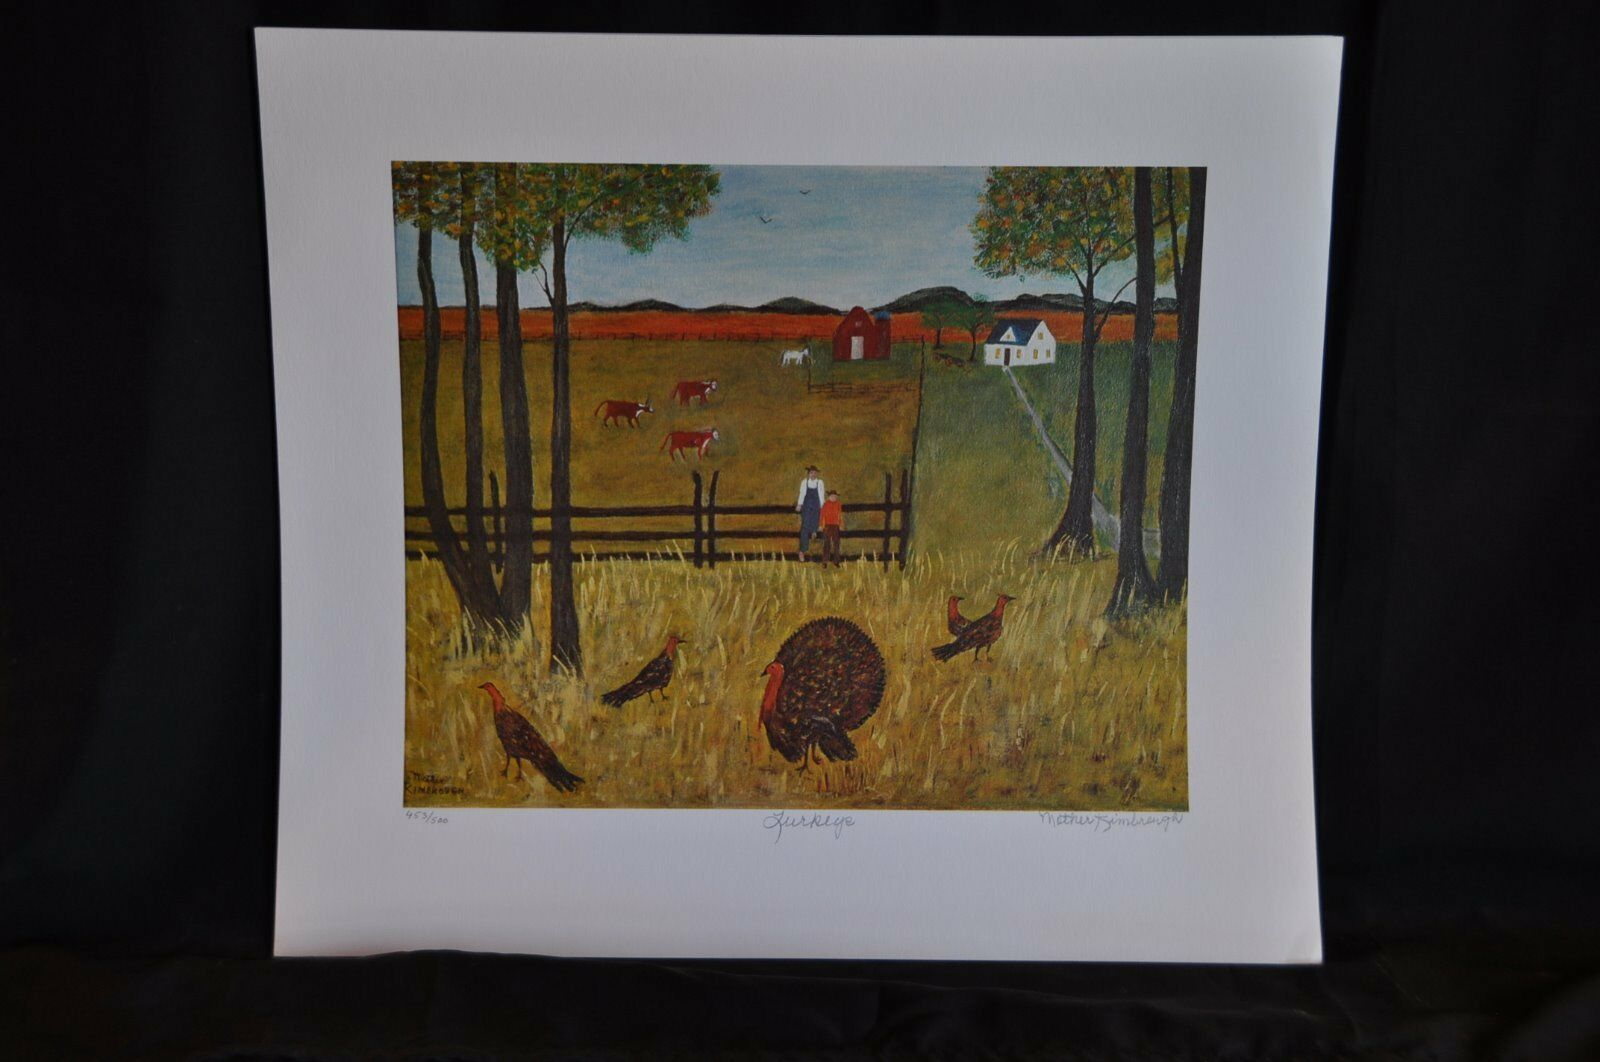 Turkeys Original Lithograph by Mother Kimbrough 453/500 Signed and Numbered